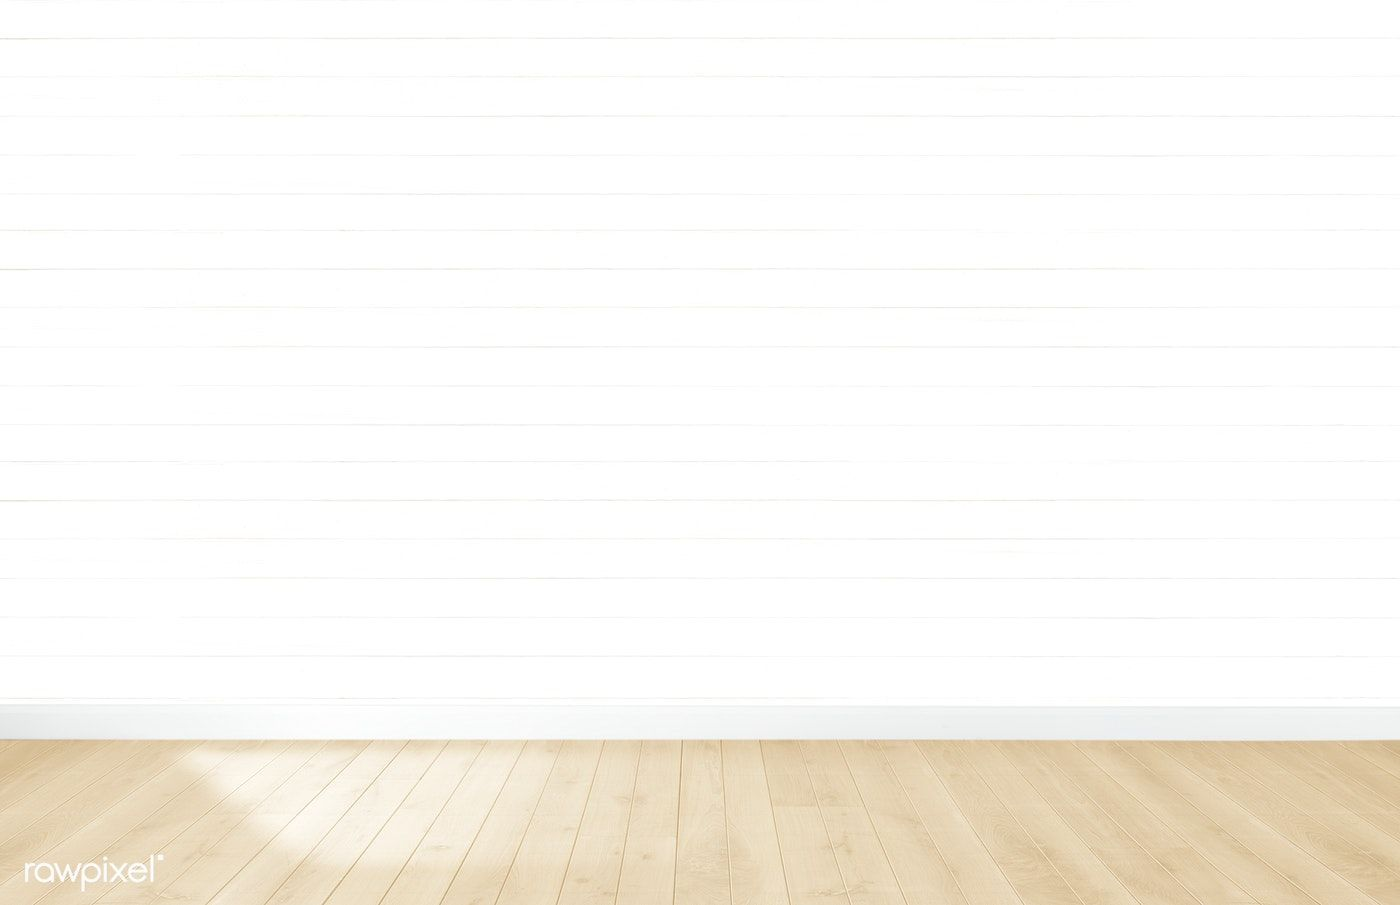 White Wall With Gray Floor Product Background Free Image By Rawpixel Com In 2020 Textured Background Background White Wood Texture